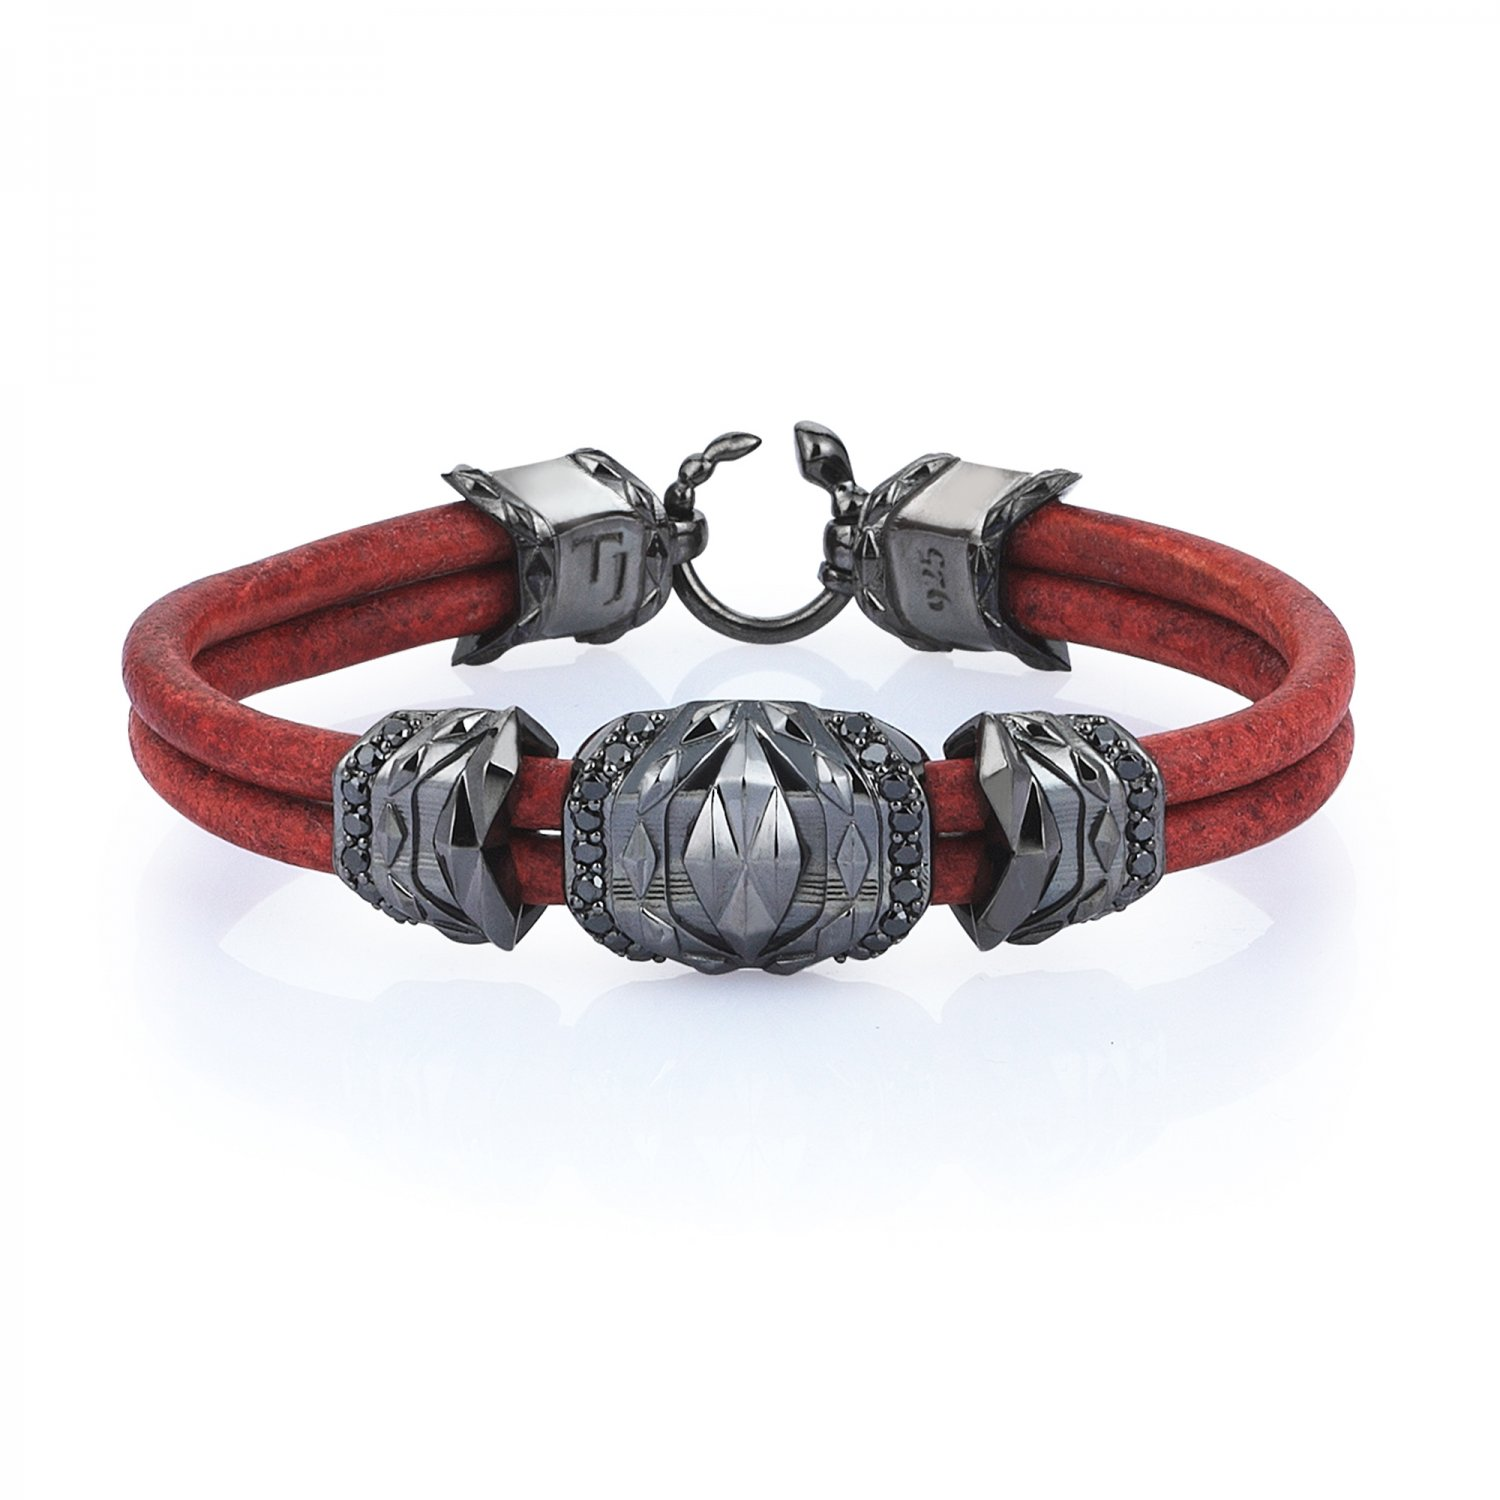 Natural Vintage Brick Leather Silver Cubic Bracelet in Black Rhodium with Black Diamonds